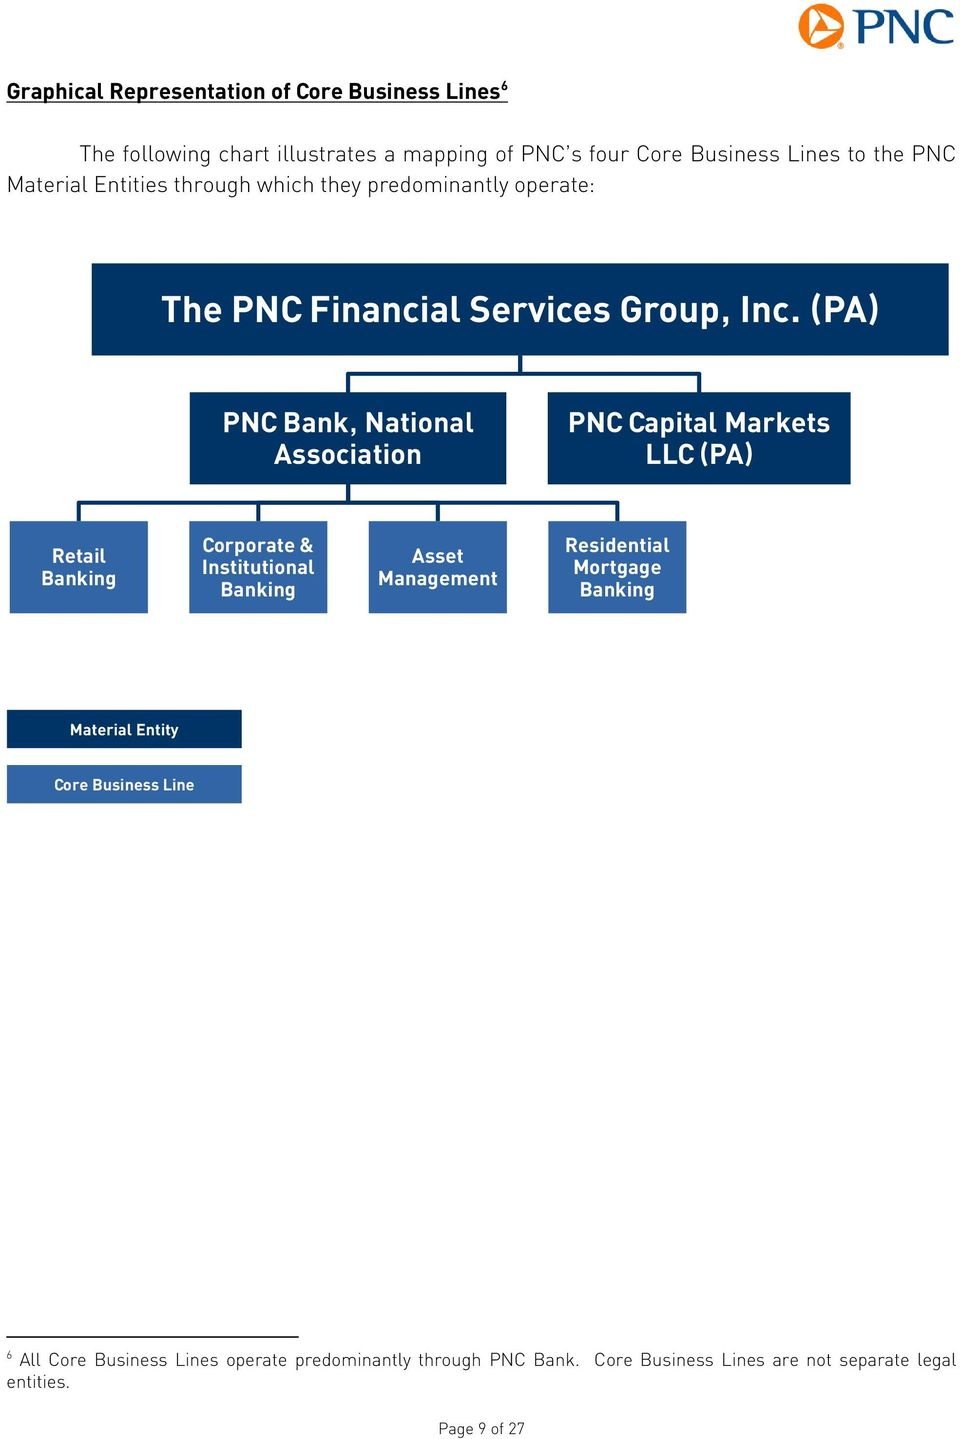 The following revised public summary of The PNC Financial Services